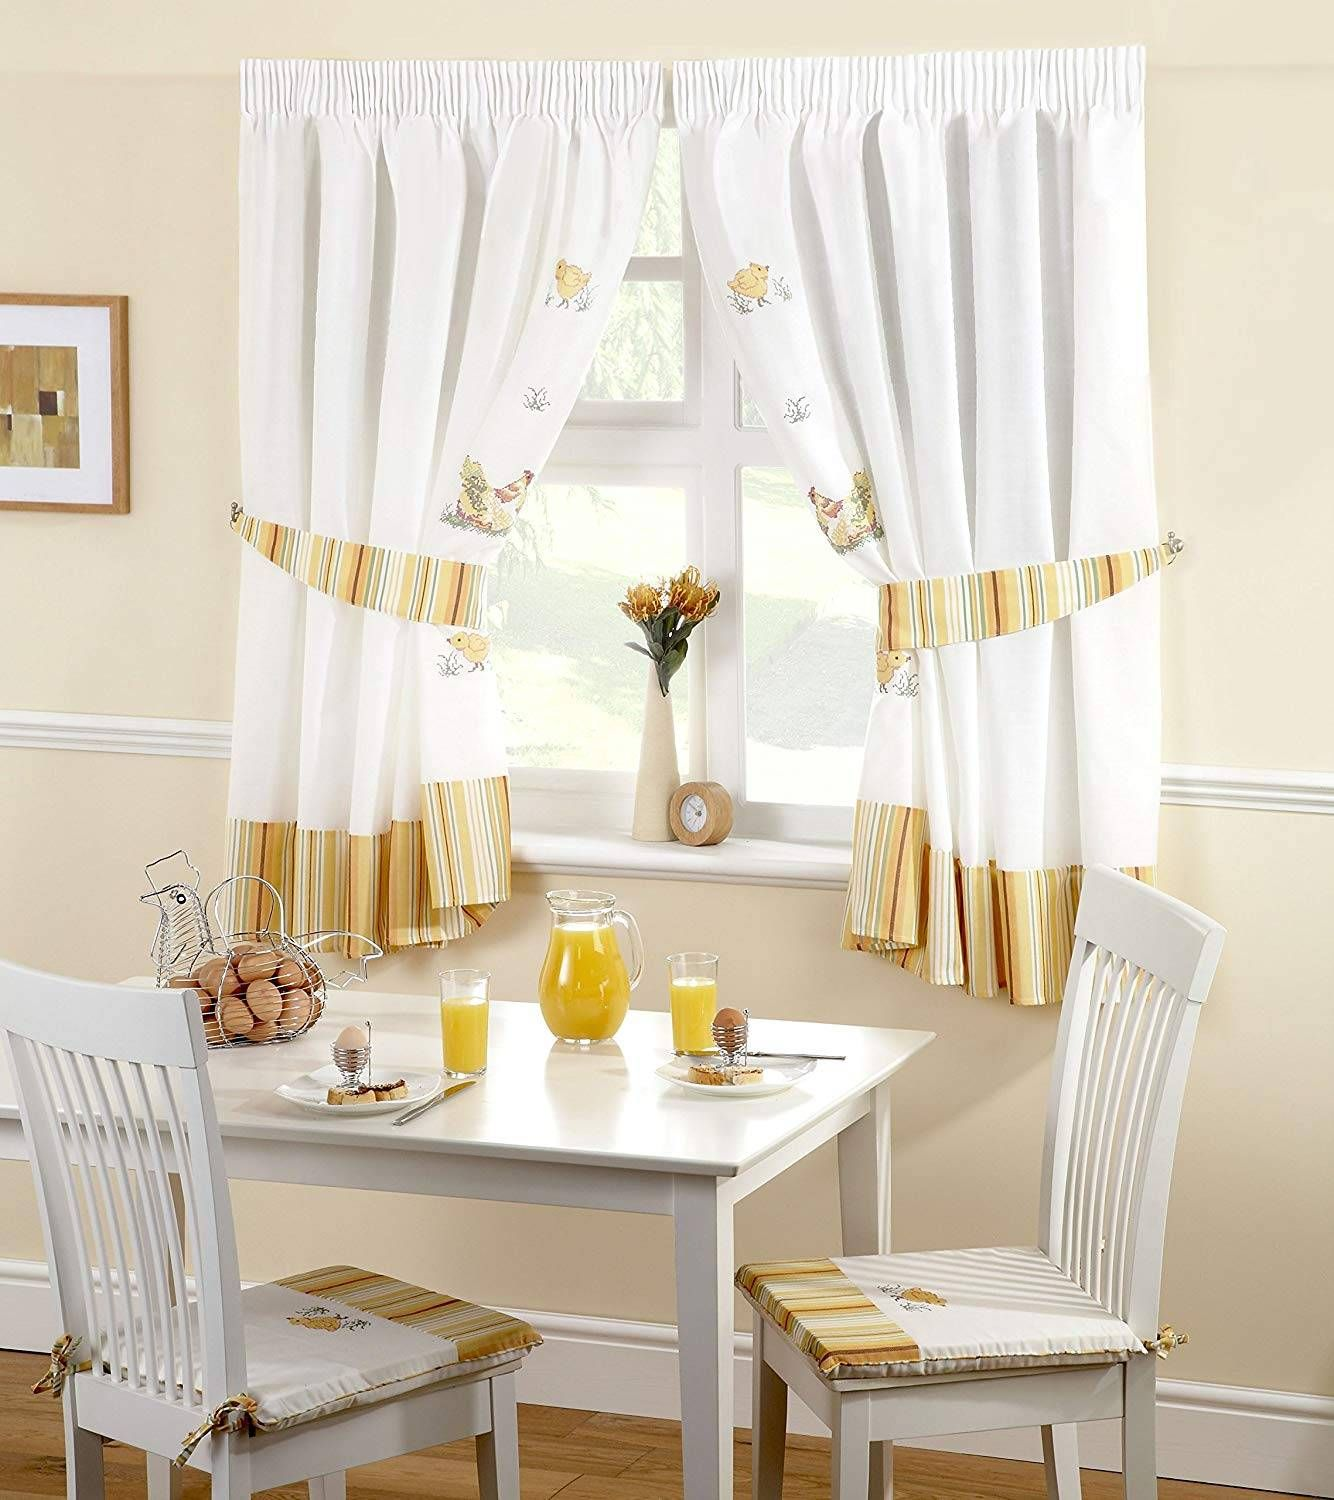 Design Kitchen Curtains (With images) | Kitchen curtains ...